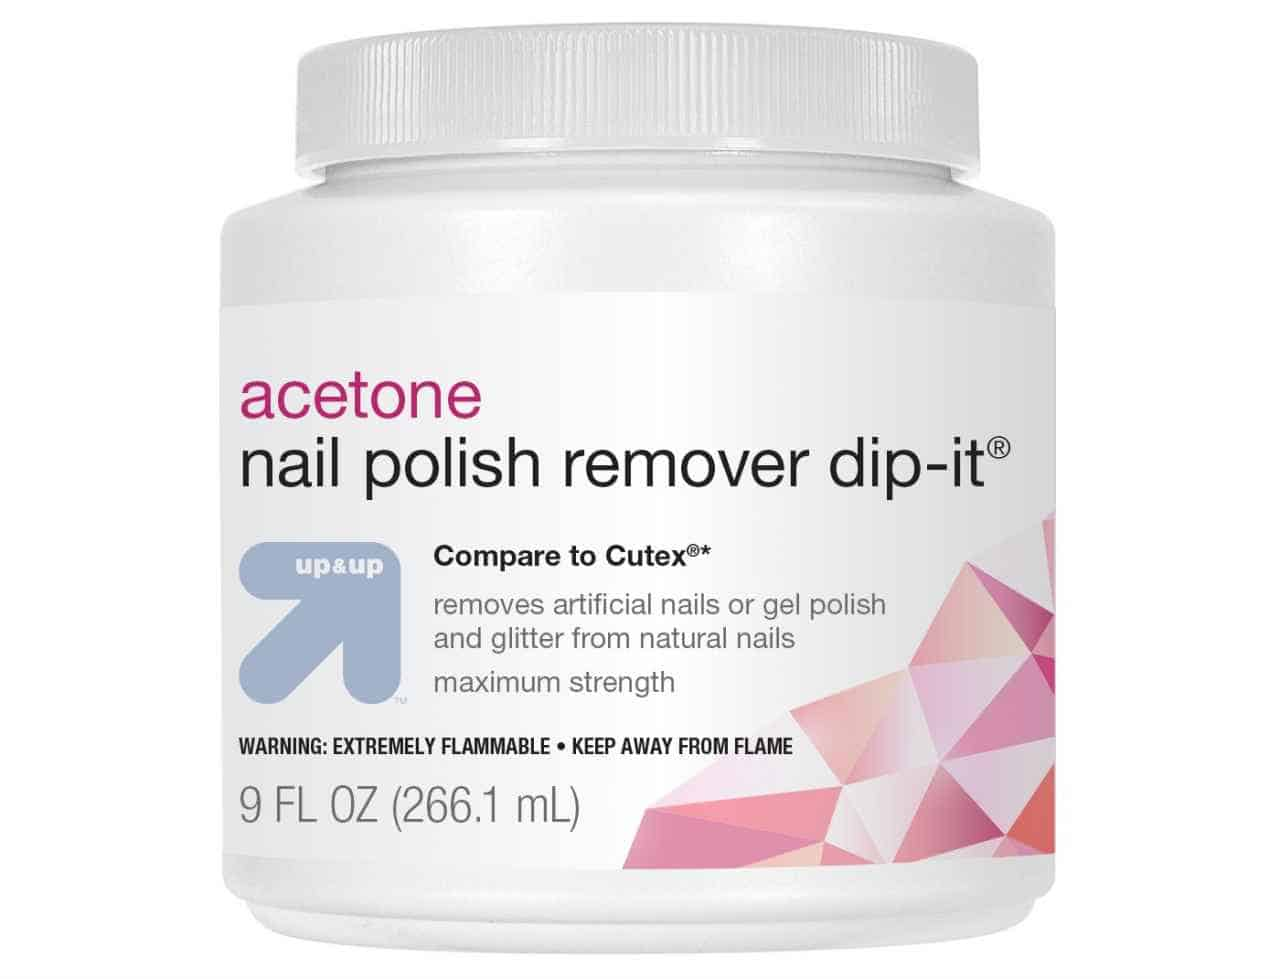 Can you use non-acetone to remove acrylic nails?